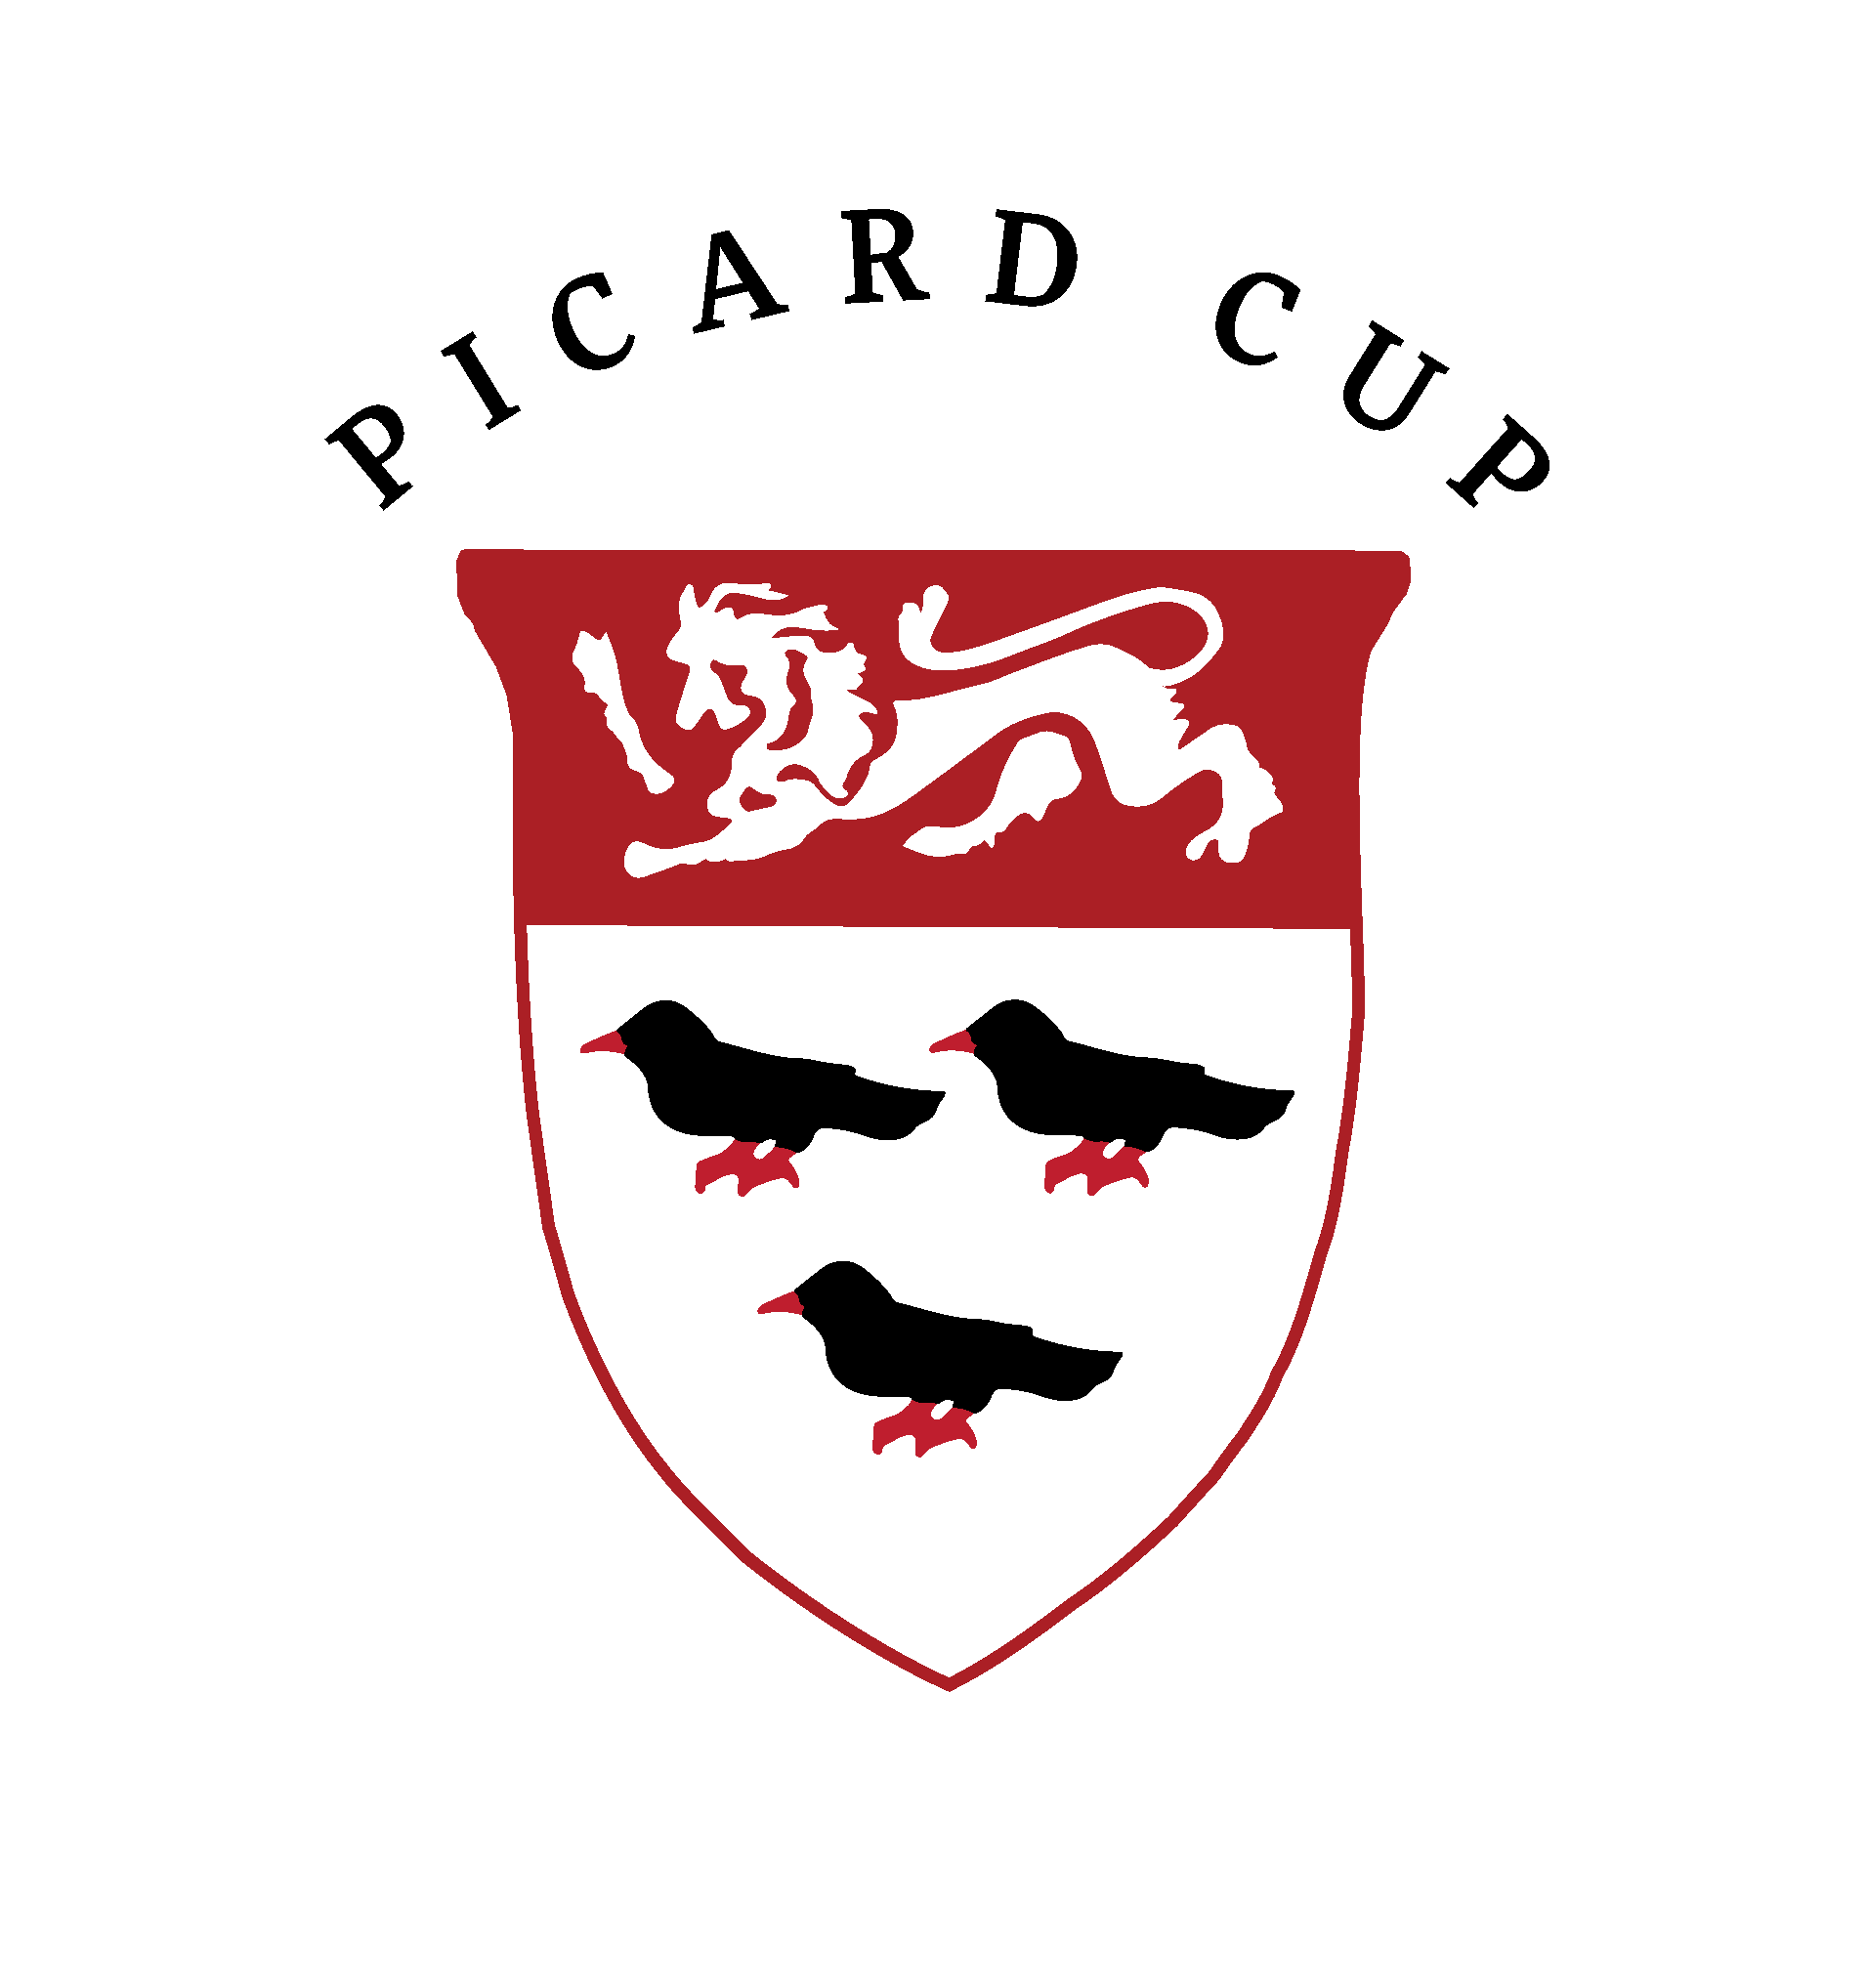 Picard Cup